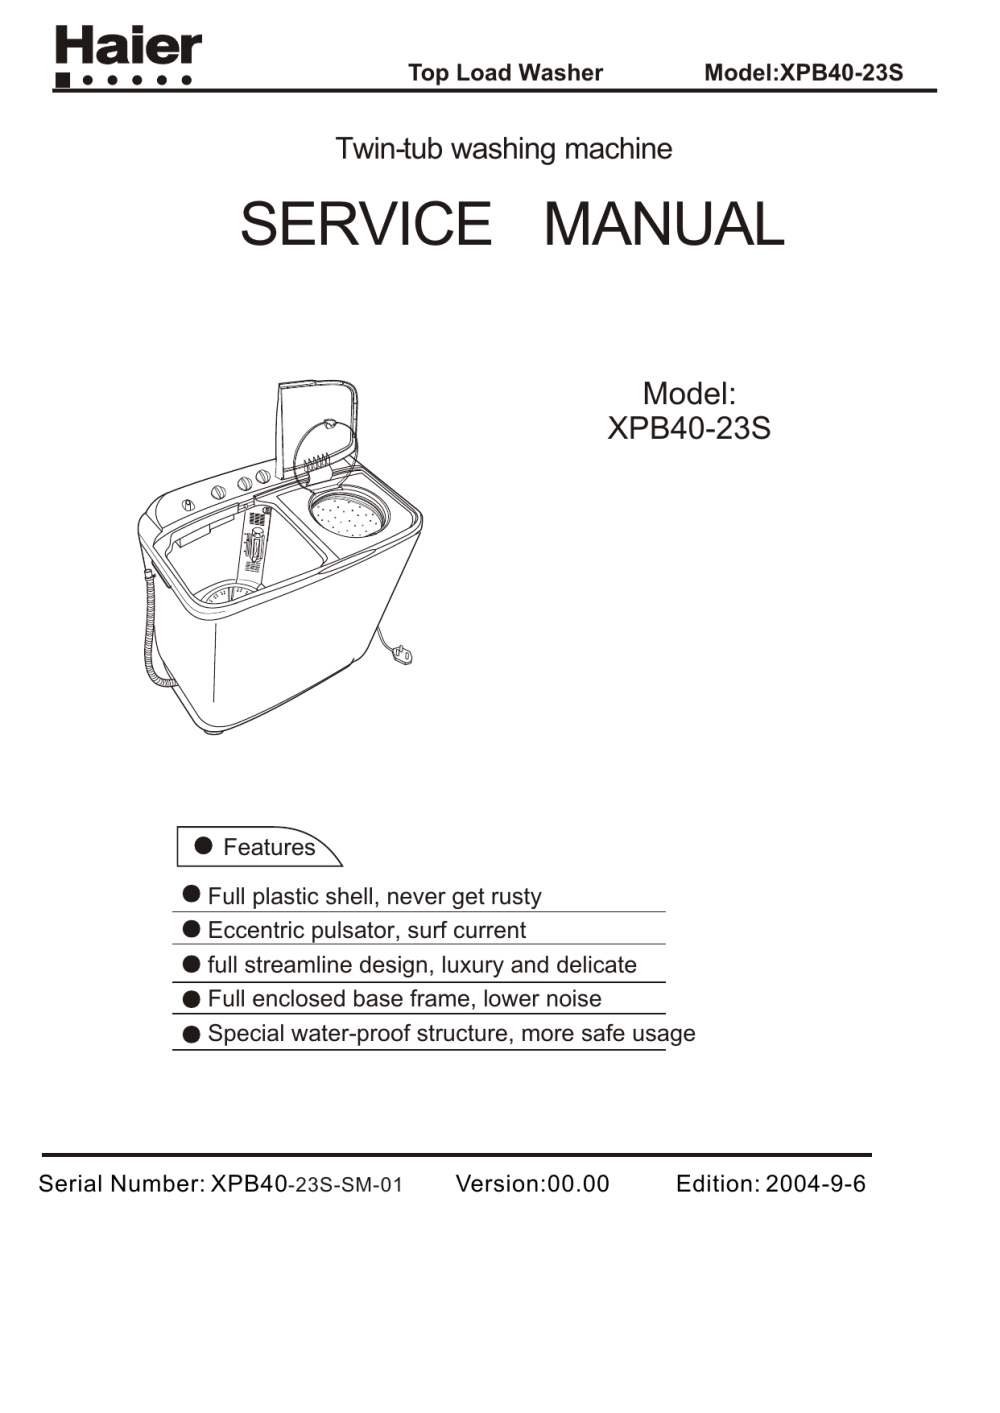 medium resolution of top load washer model xpb40 23s twin tub washing machine service manual model contents xpb40 23s 1